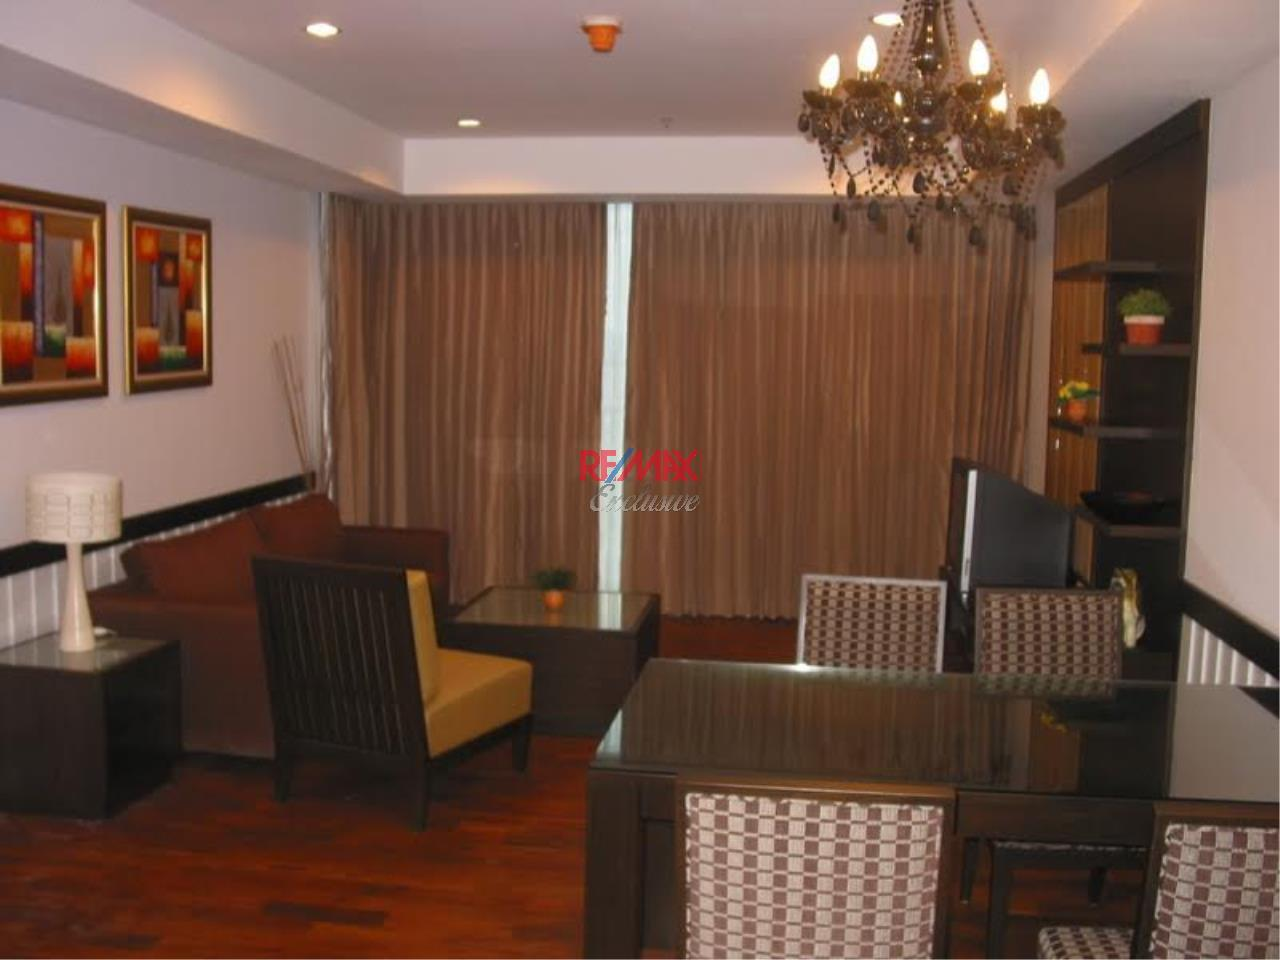 RE/MAX Exclusive Agency's 2 Bedrooms at Baan Siri24 For Rent 65,000 THB  2